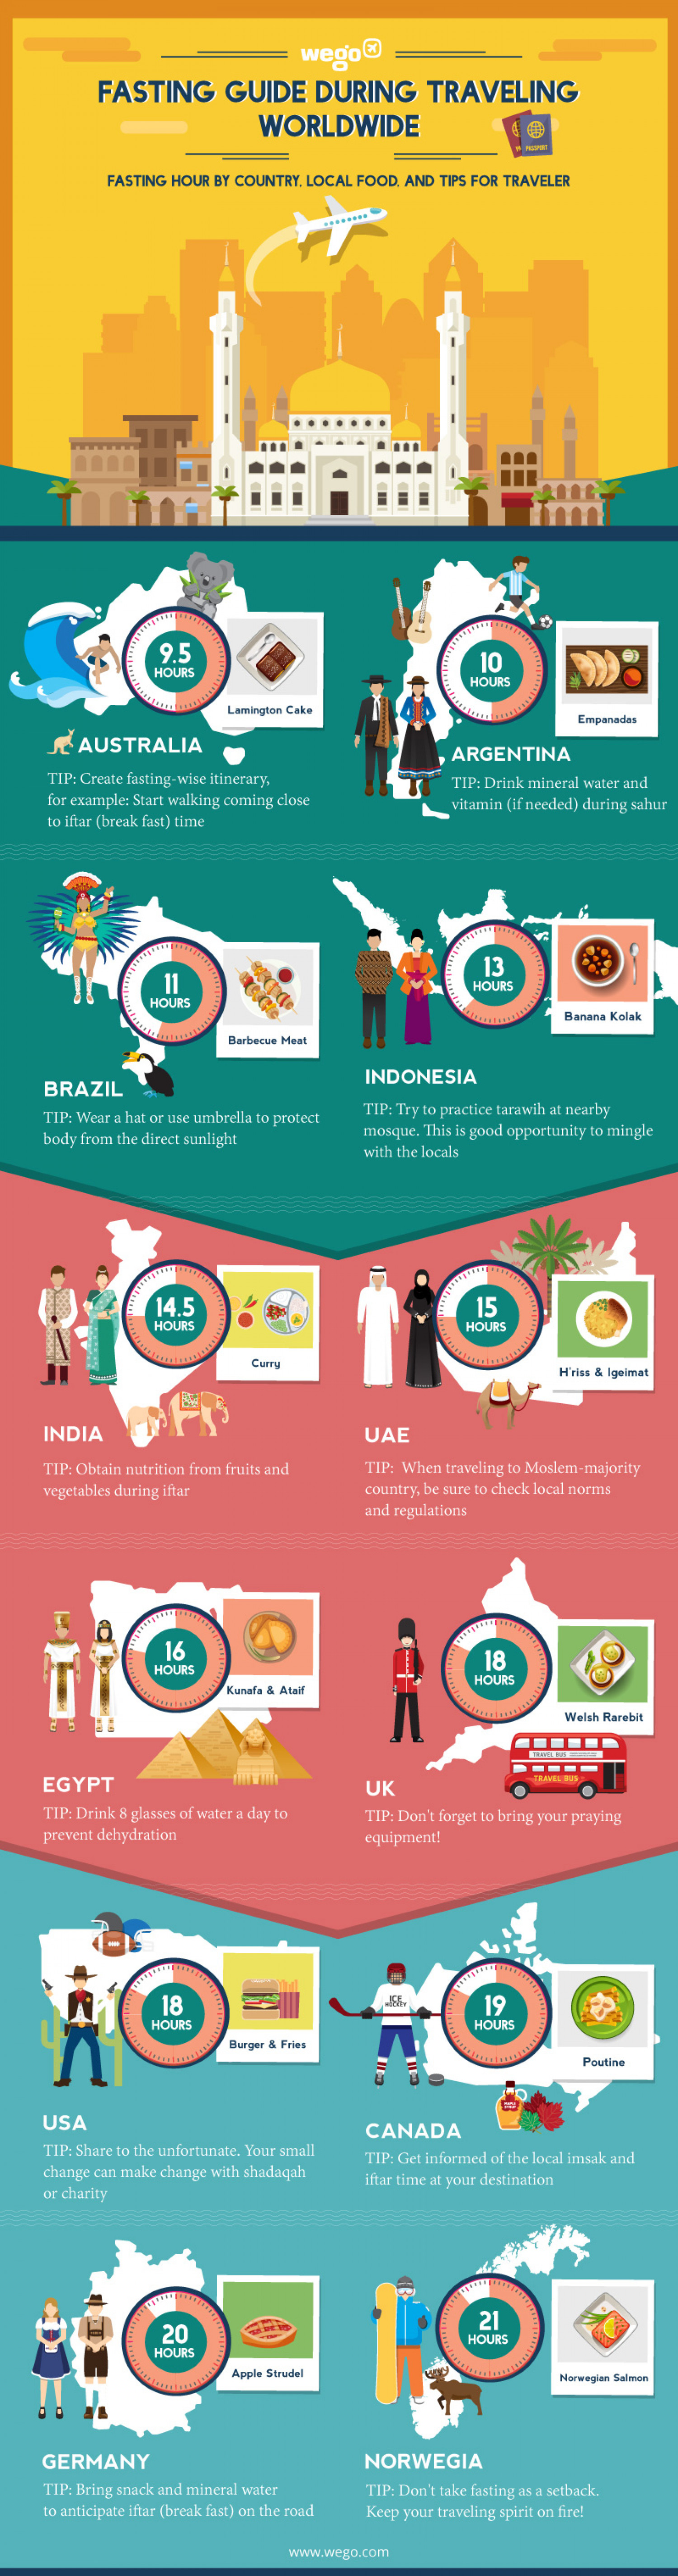 Fasting Guide During Traveling Worldwide Infographic